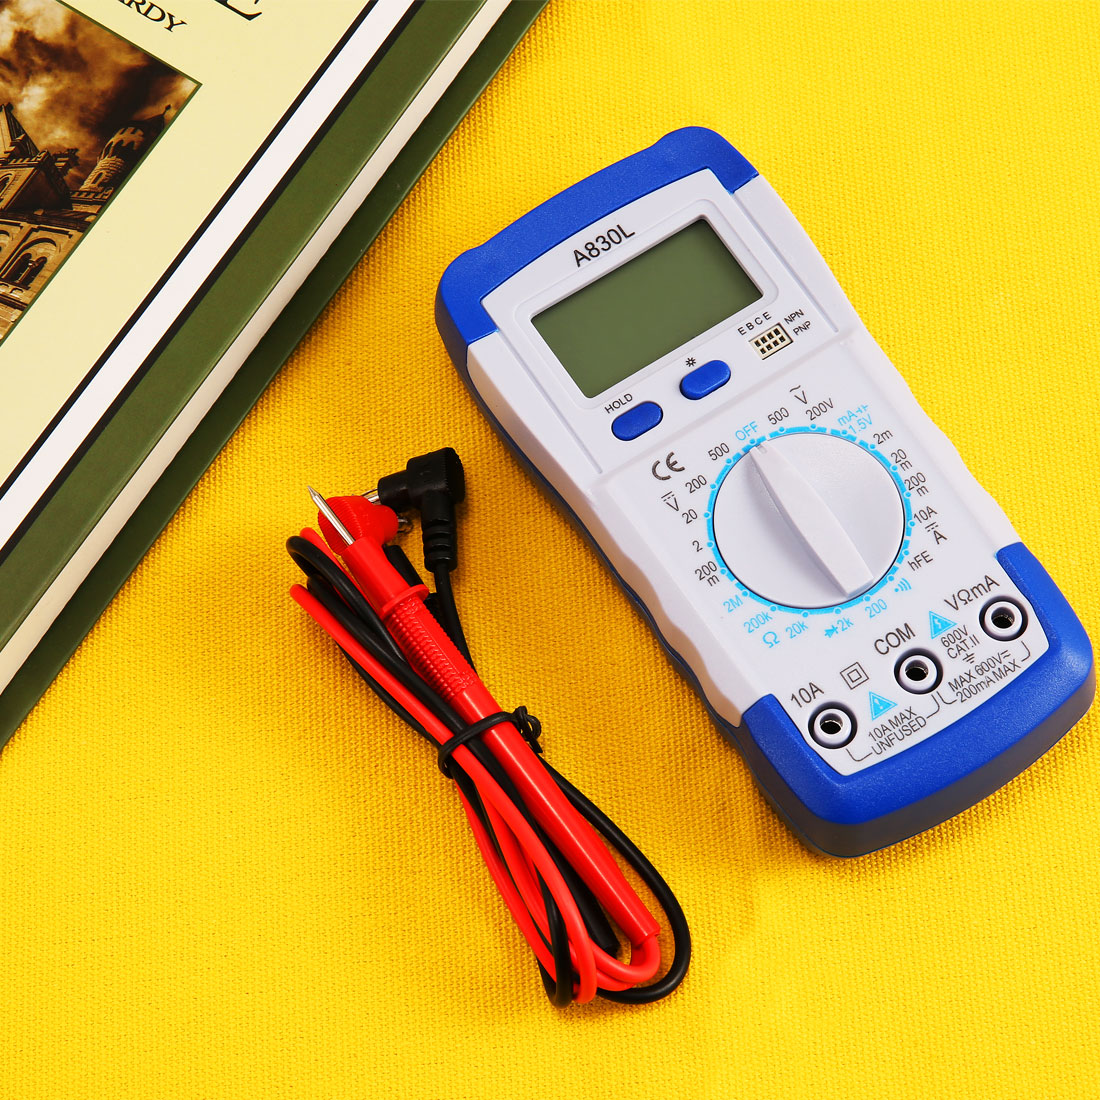 Electrical LCD AC DC Voltmeter Ohmmeter Test Practical Accessories Digital Multimeter Electronic Measuring Instrument aircraft electrical and electronic systems